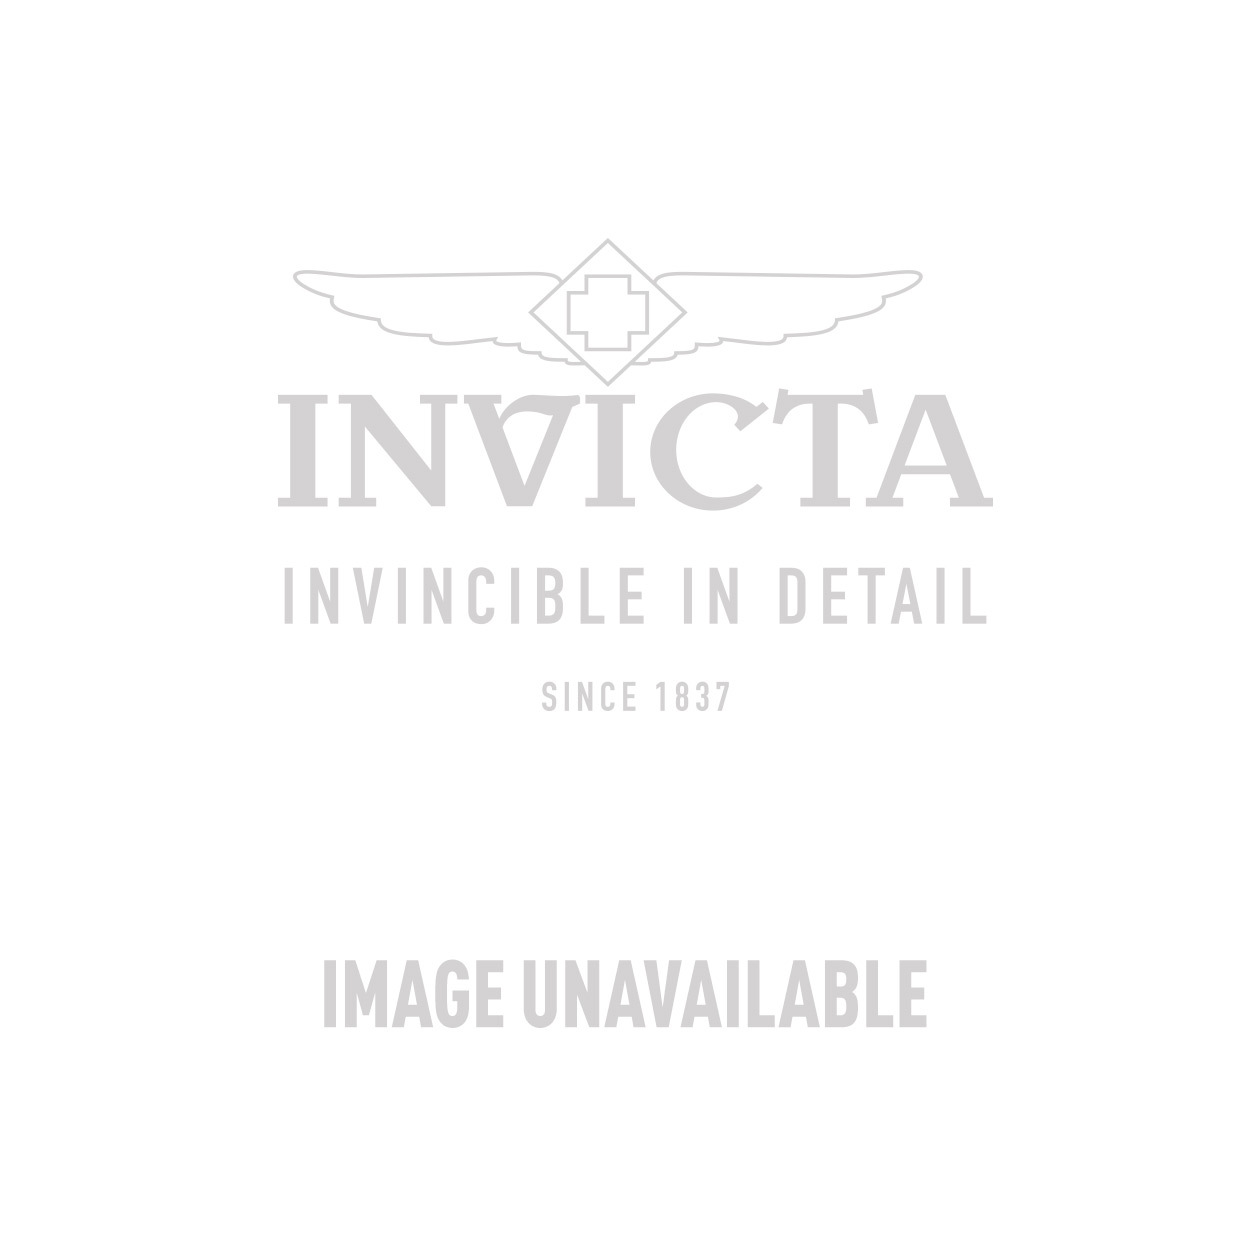 Invicta I-Force Quartz Watch - Stainless Steel case Stainless Steel band - Model 18696